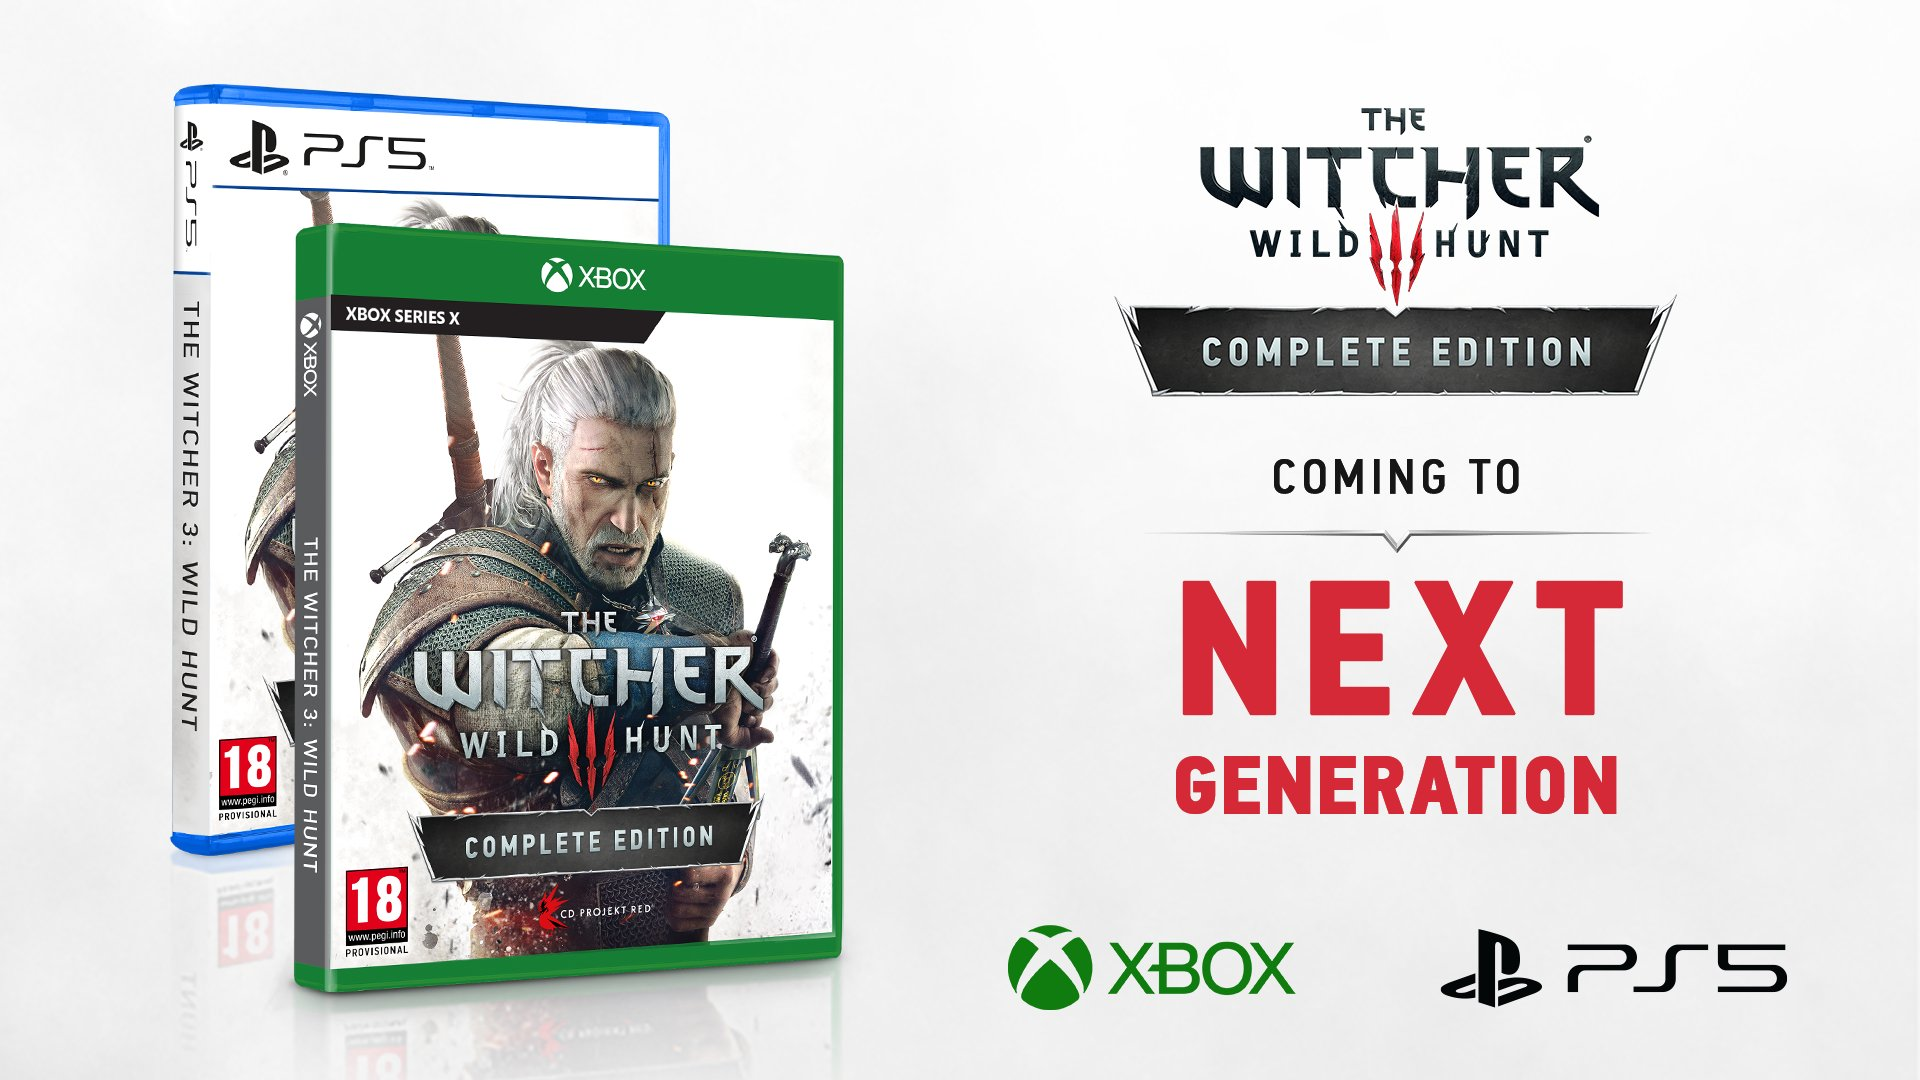 The Witcher 3 Ps5 Xbox Series X